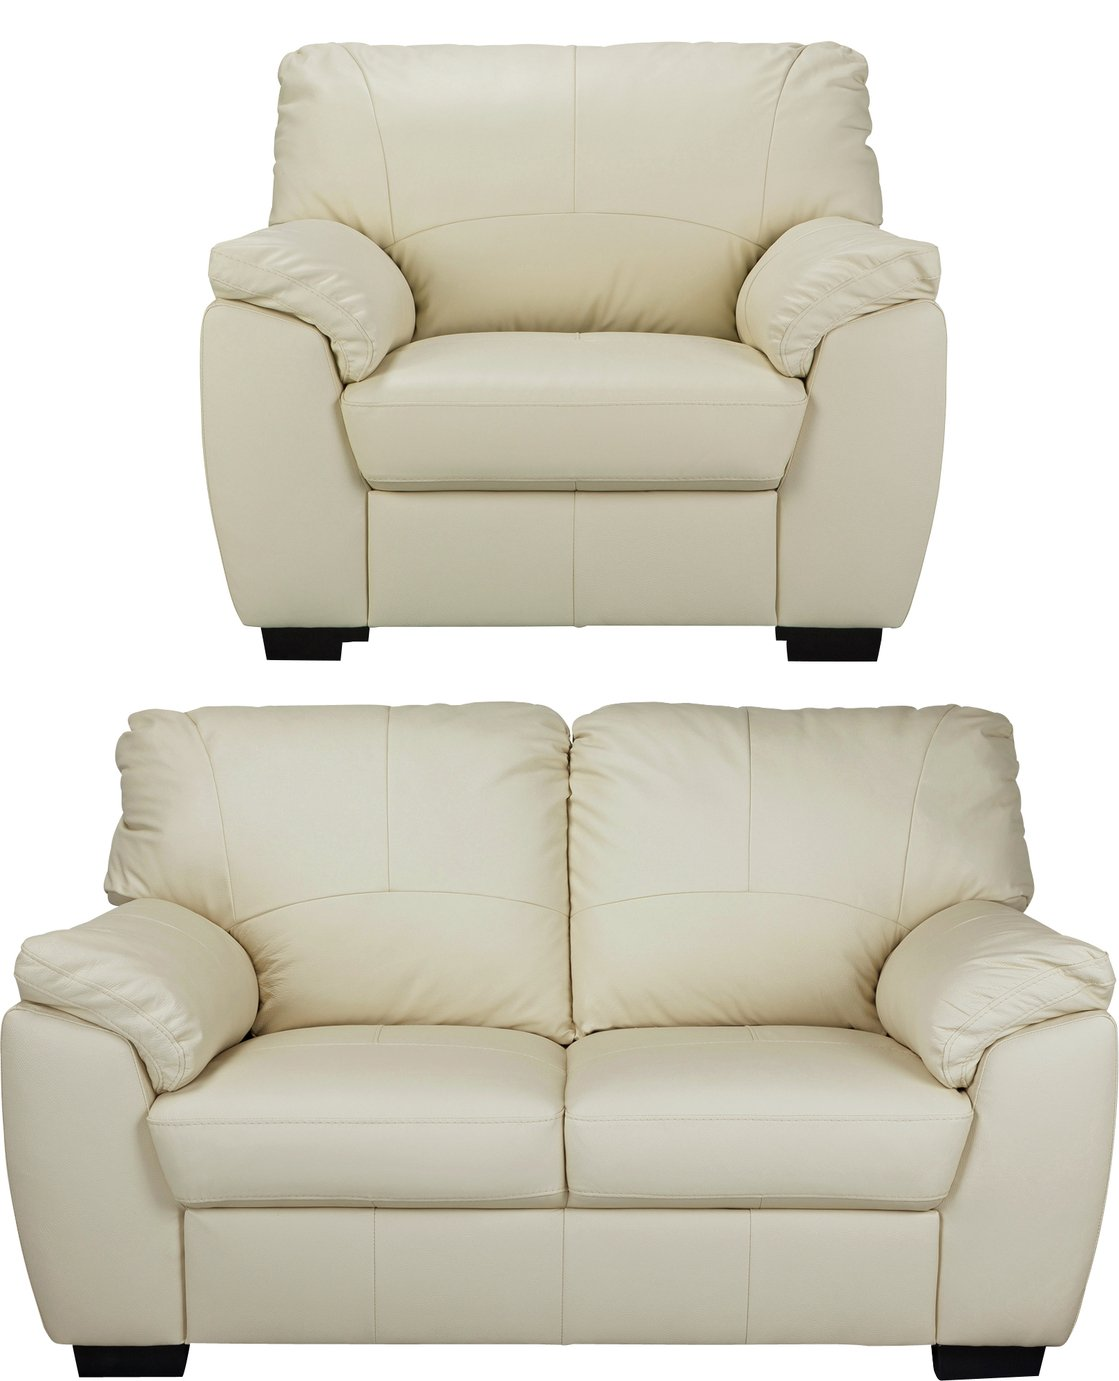 Argos Home Milano Leather Chair and 2 Seater Sofa - Ivory